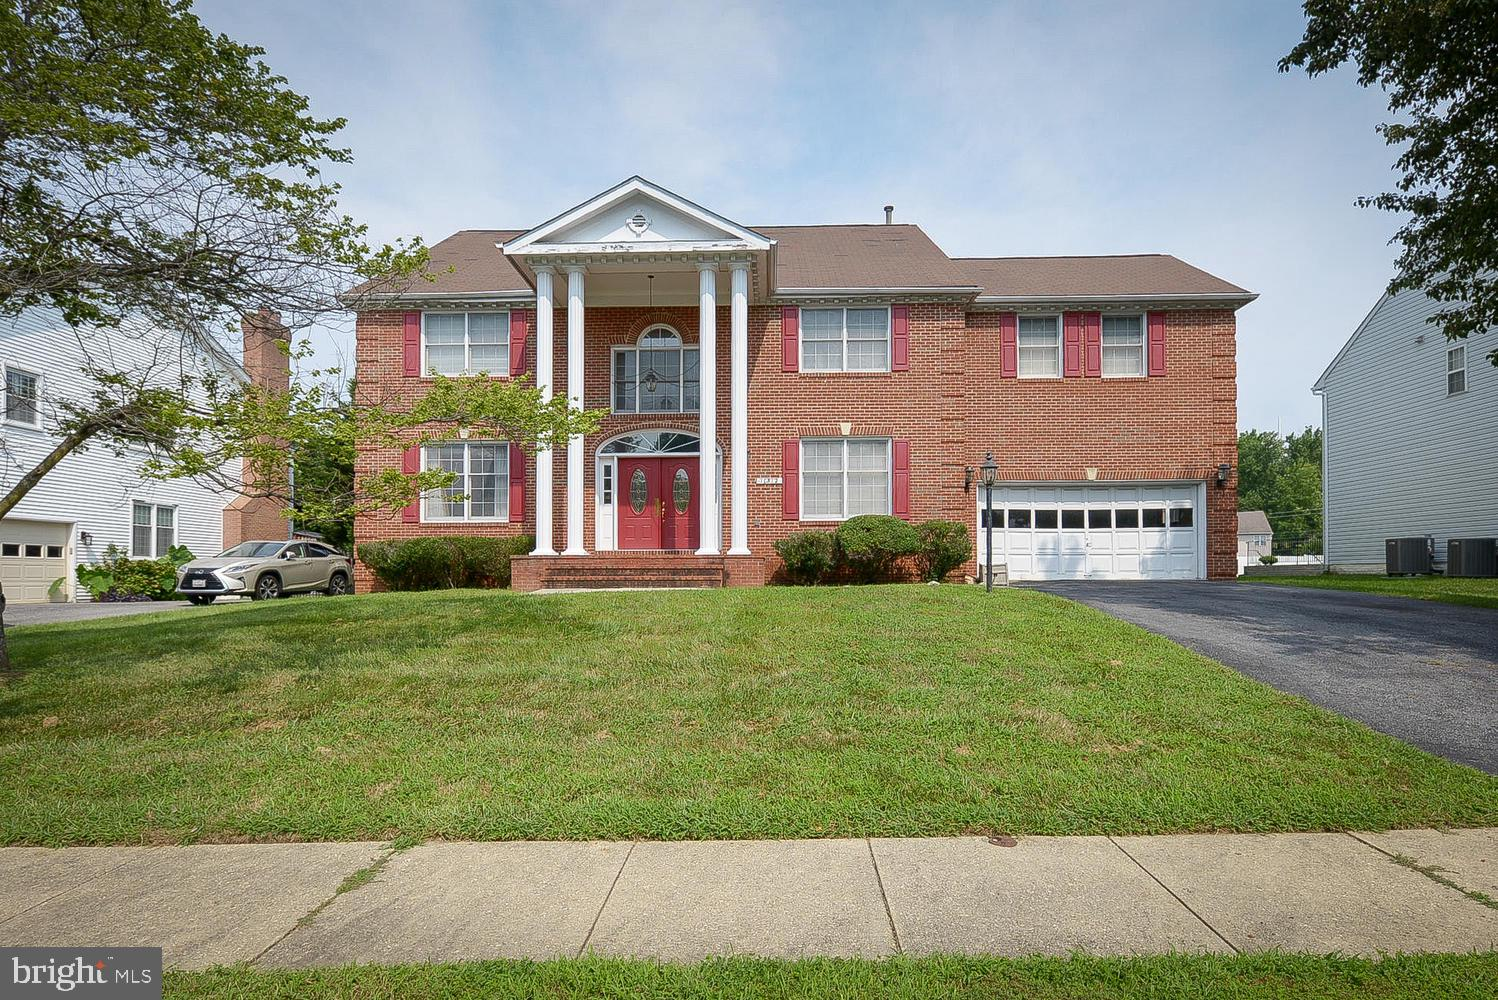 11512 Lottsford Ter, Bowie, MD, 20721